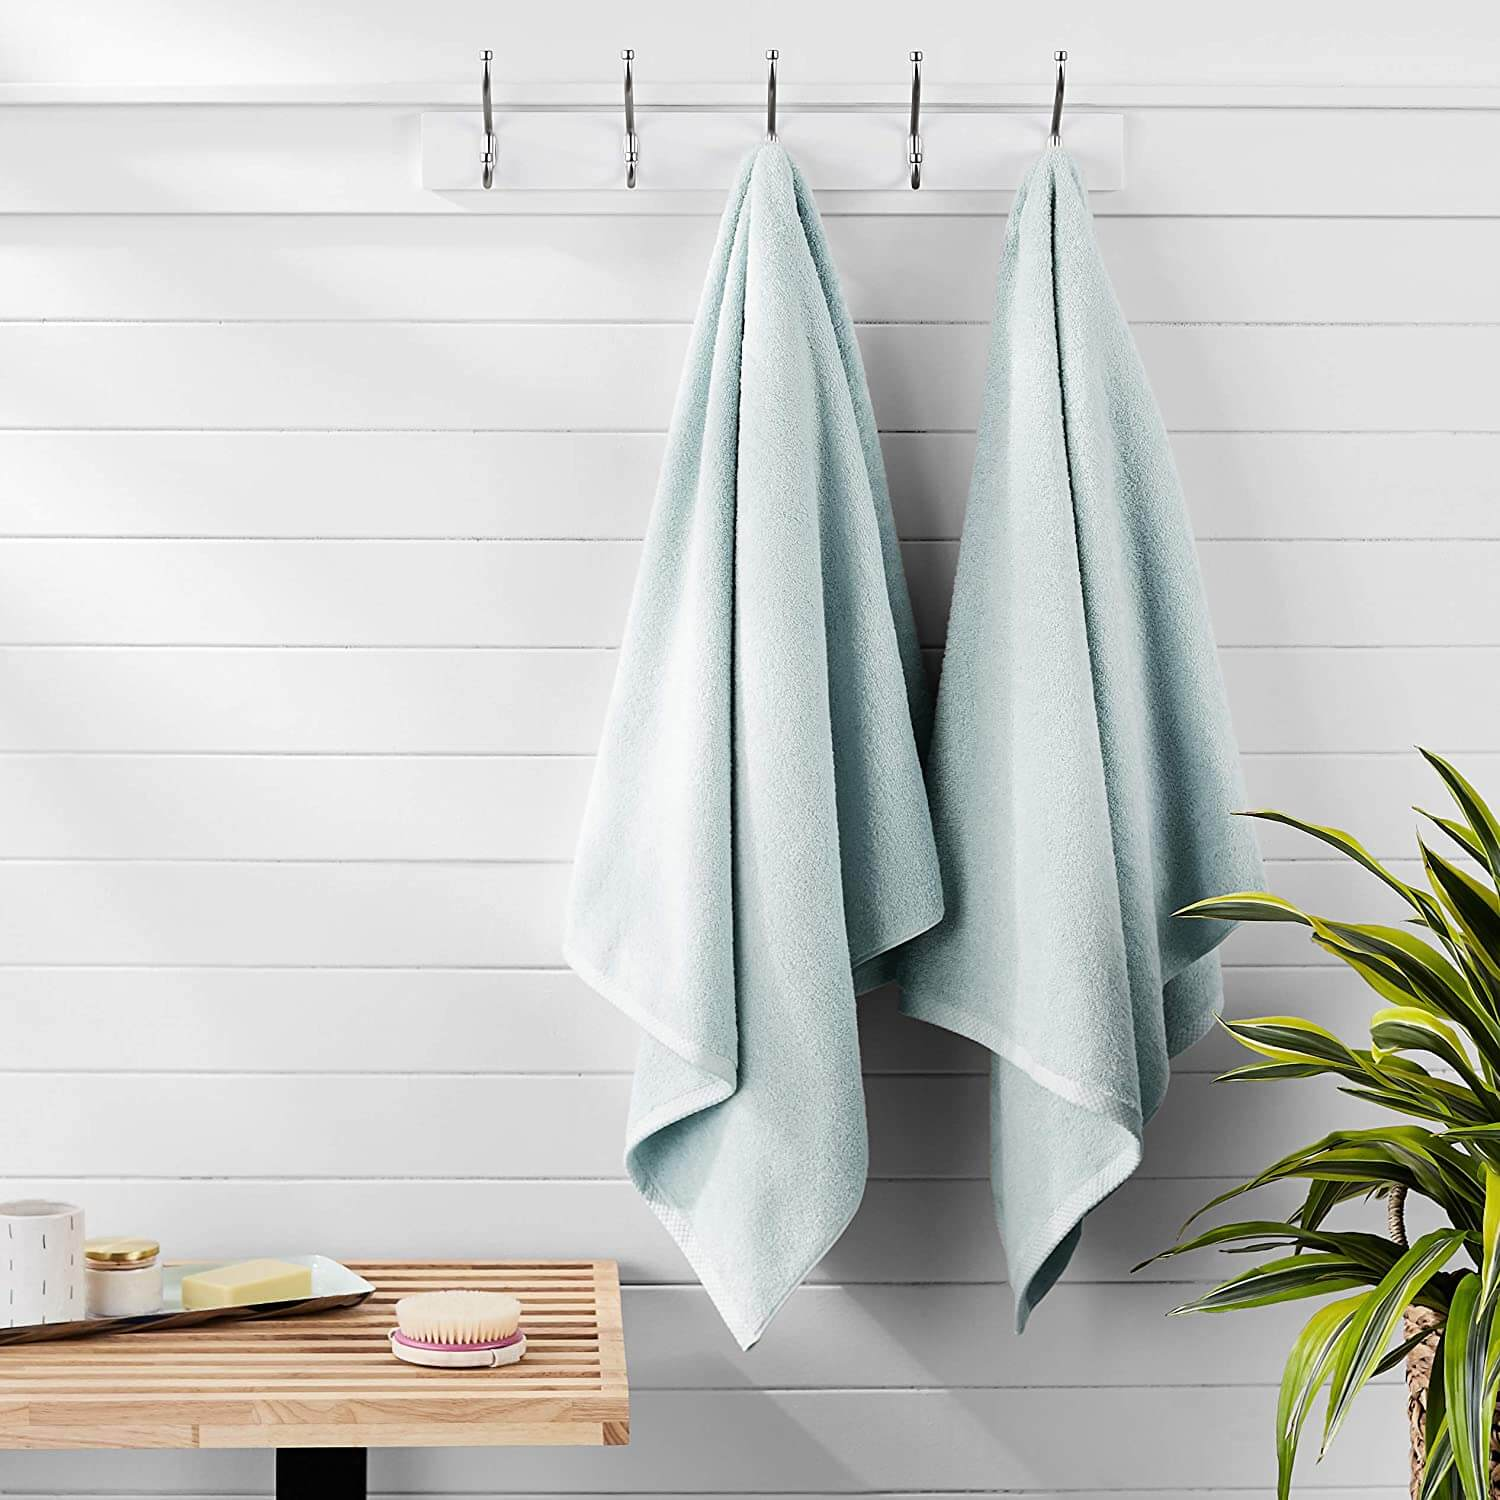 Neat and clean mint towels hanging in the bathroom